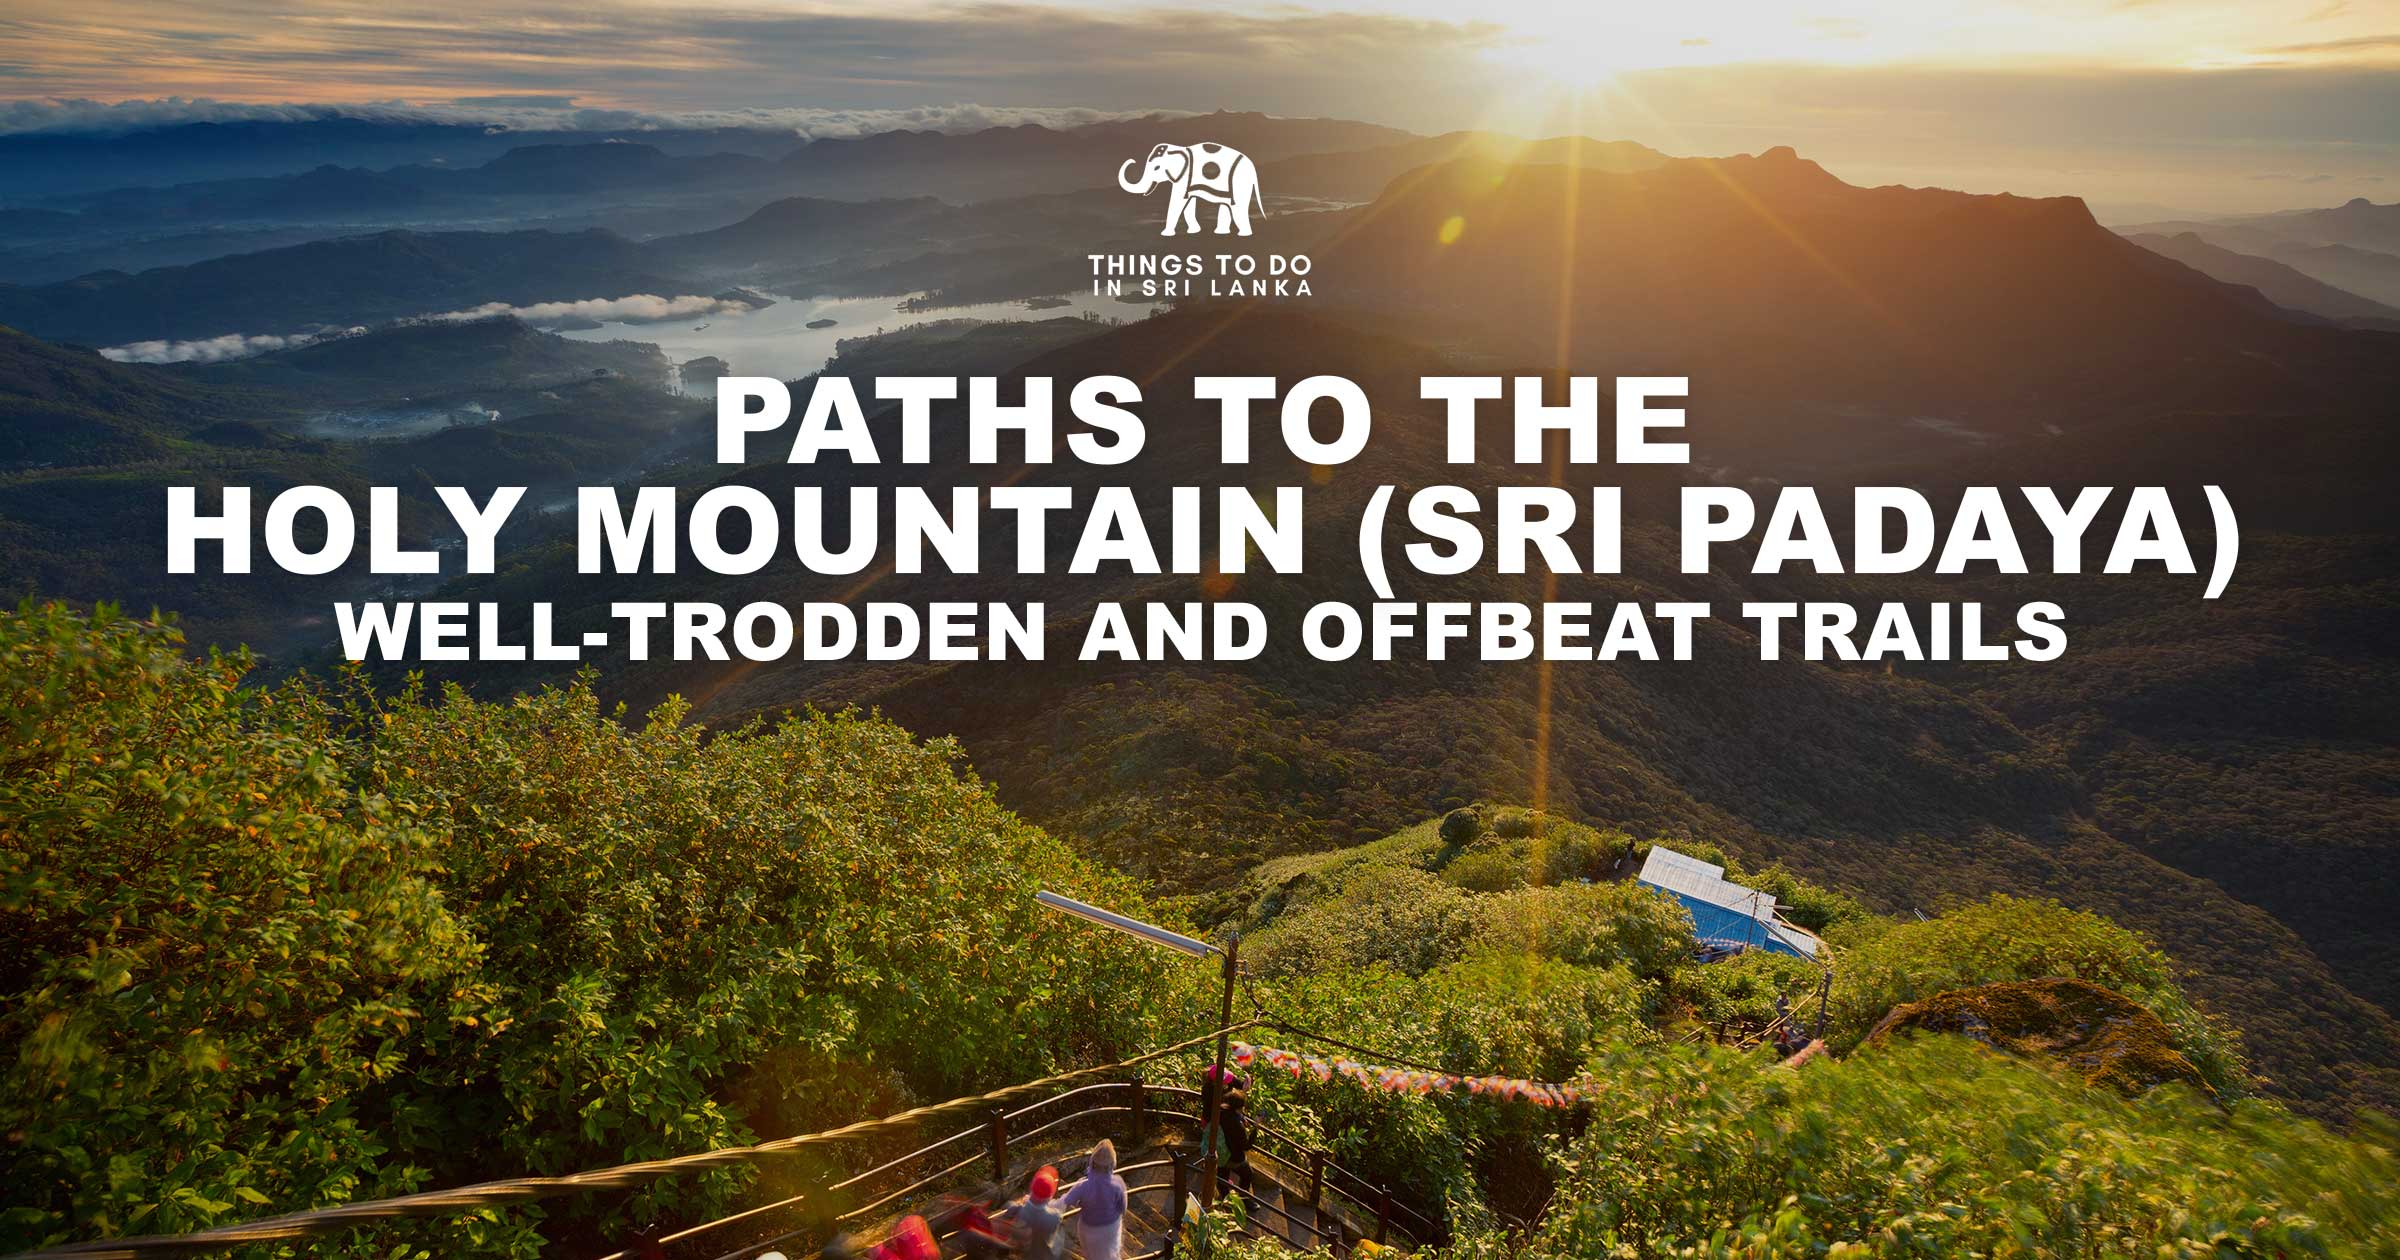 Paths to the Holy mountain (Sri Padaya) - Well-Trodden and Offbeat trails